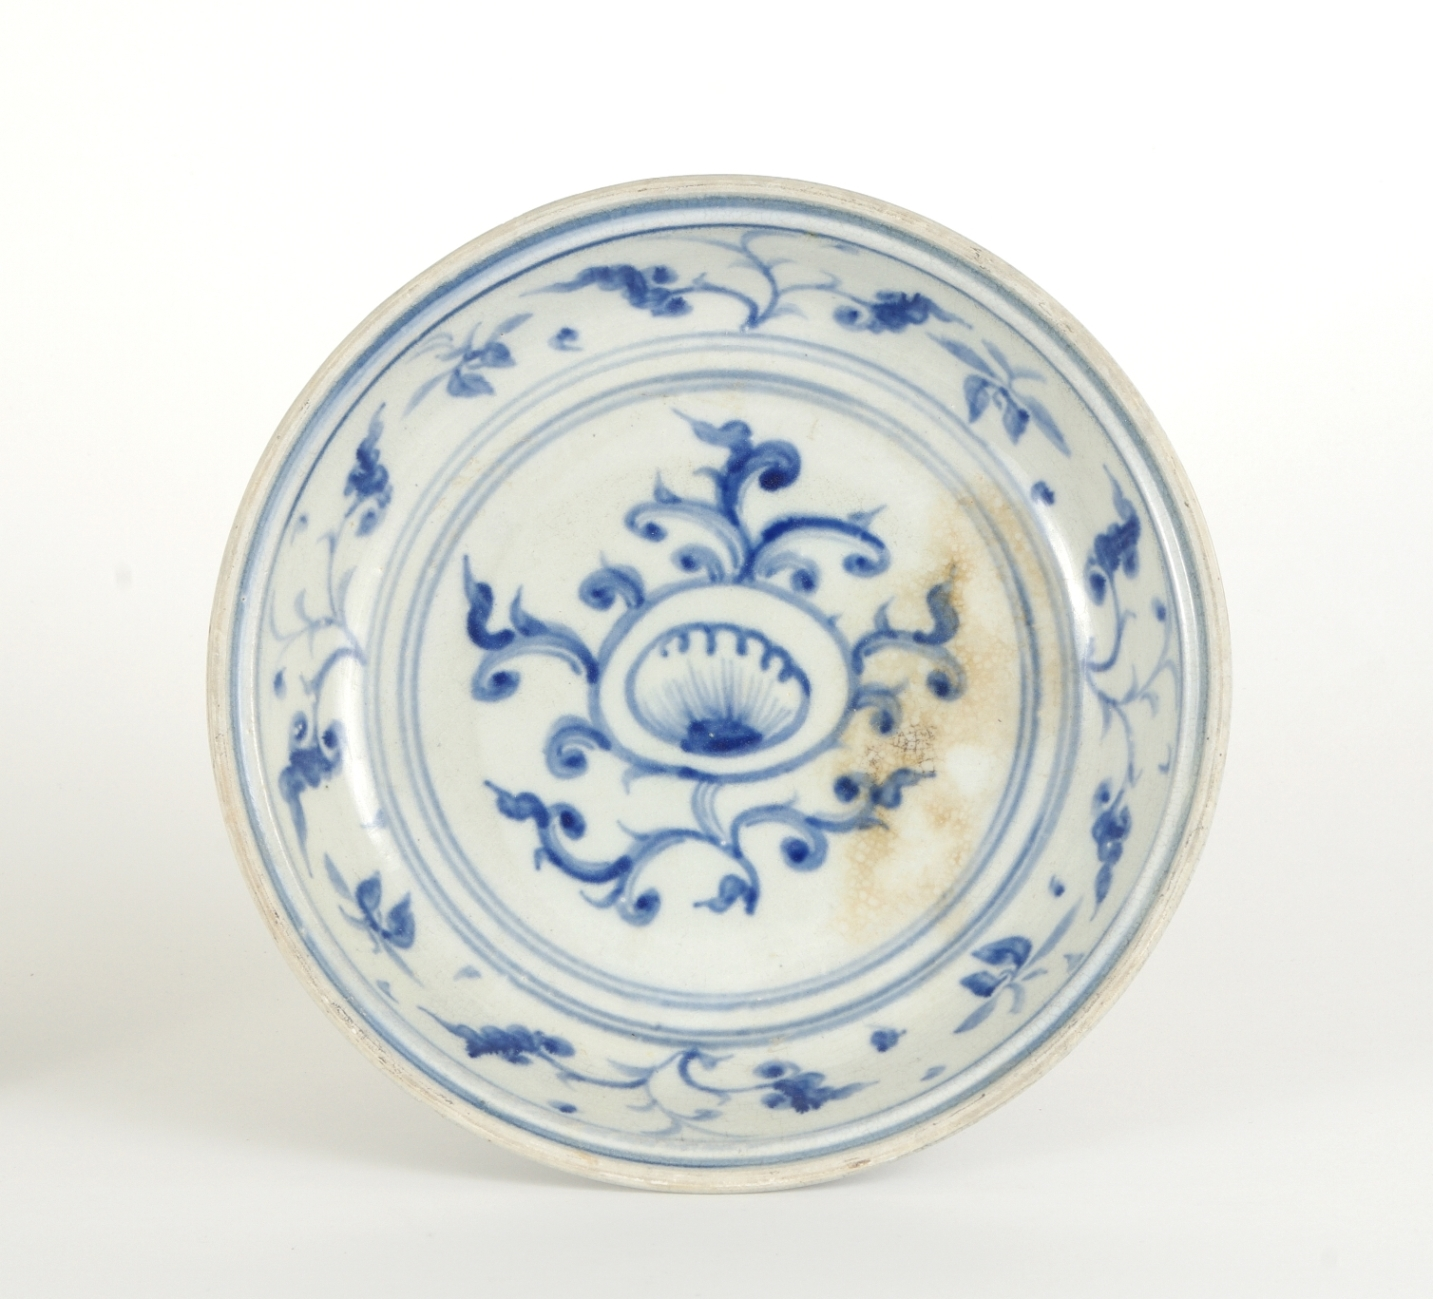 View 5: Two Blue and White Serving Dishes from the Hoi An Hoard, c. 1500